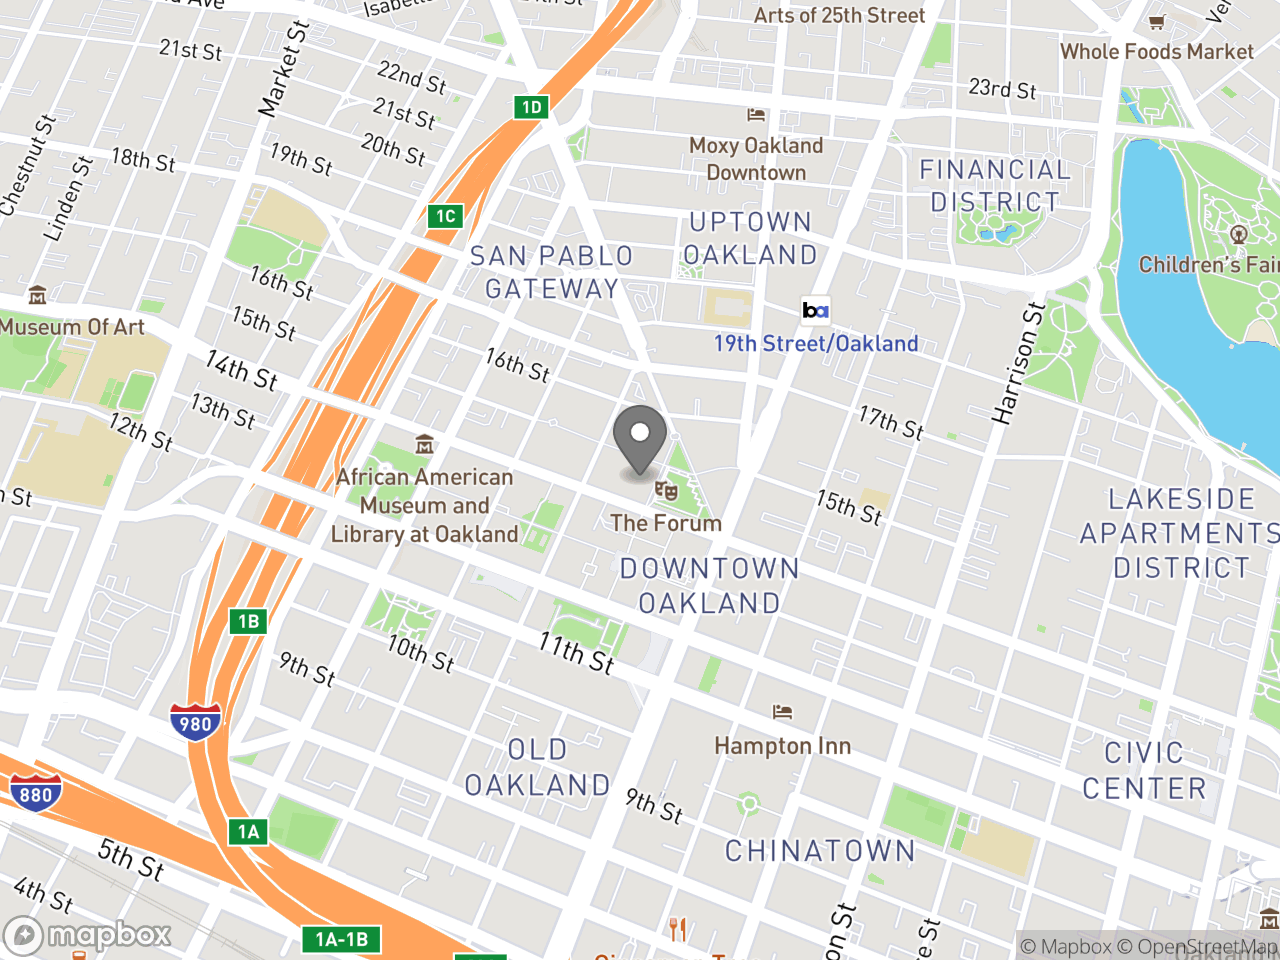 Map location for Oakland City Council, located at 1 Frank H Ogawa Plaza in Oakland, CA 94612